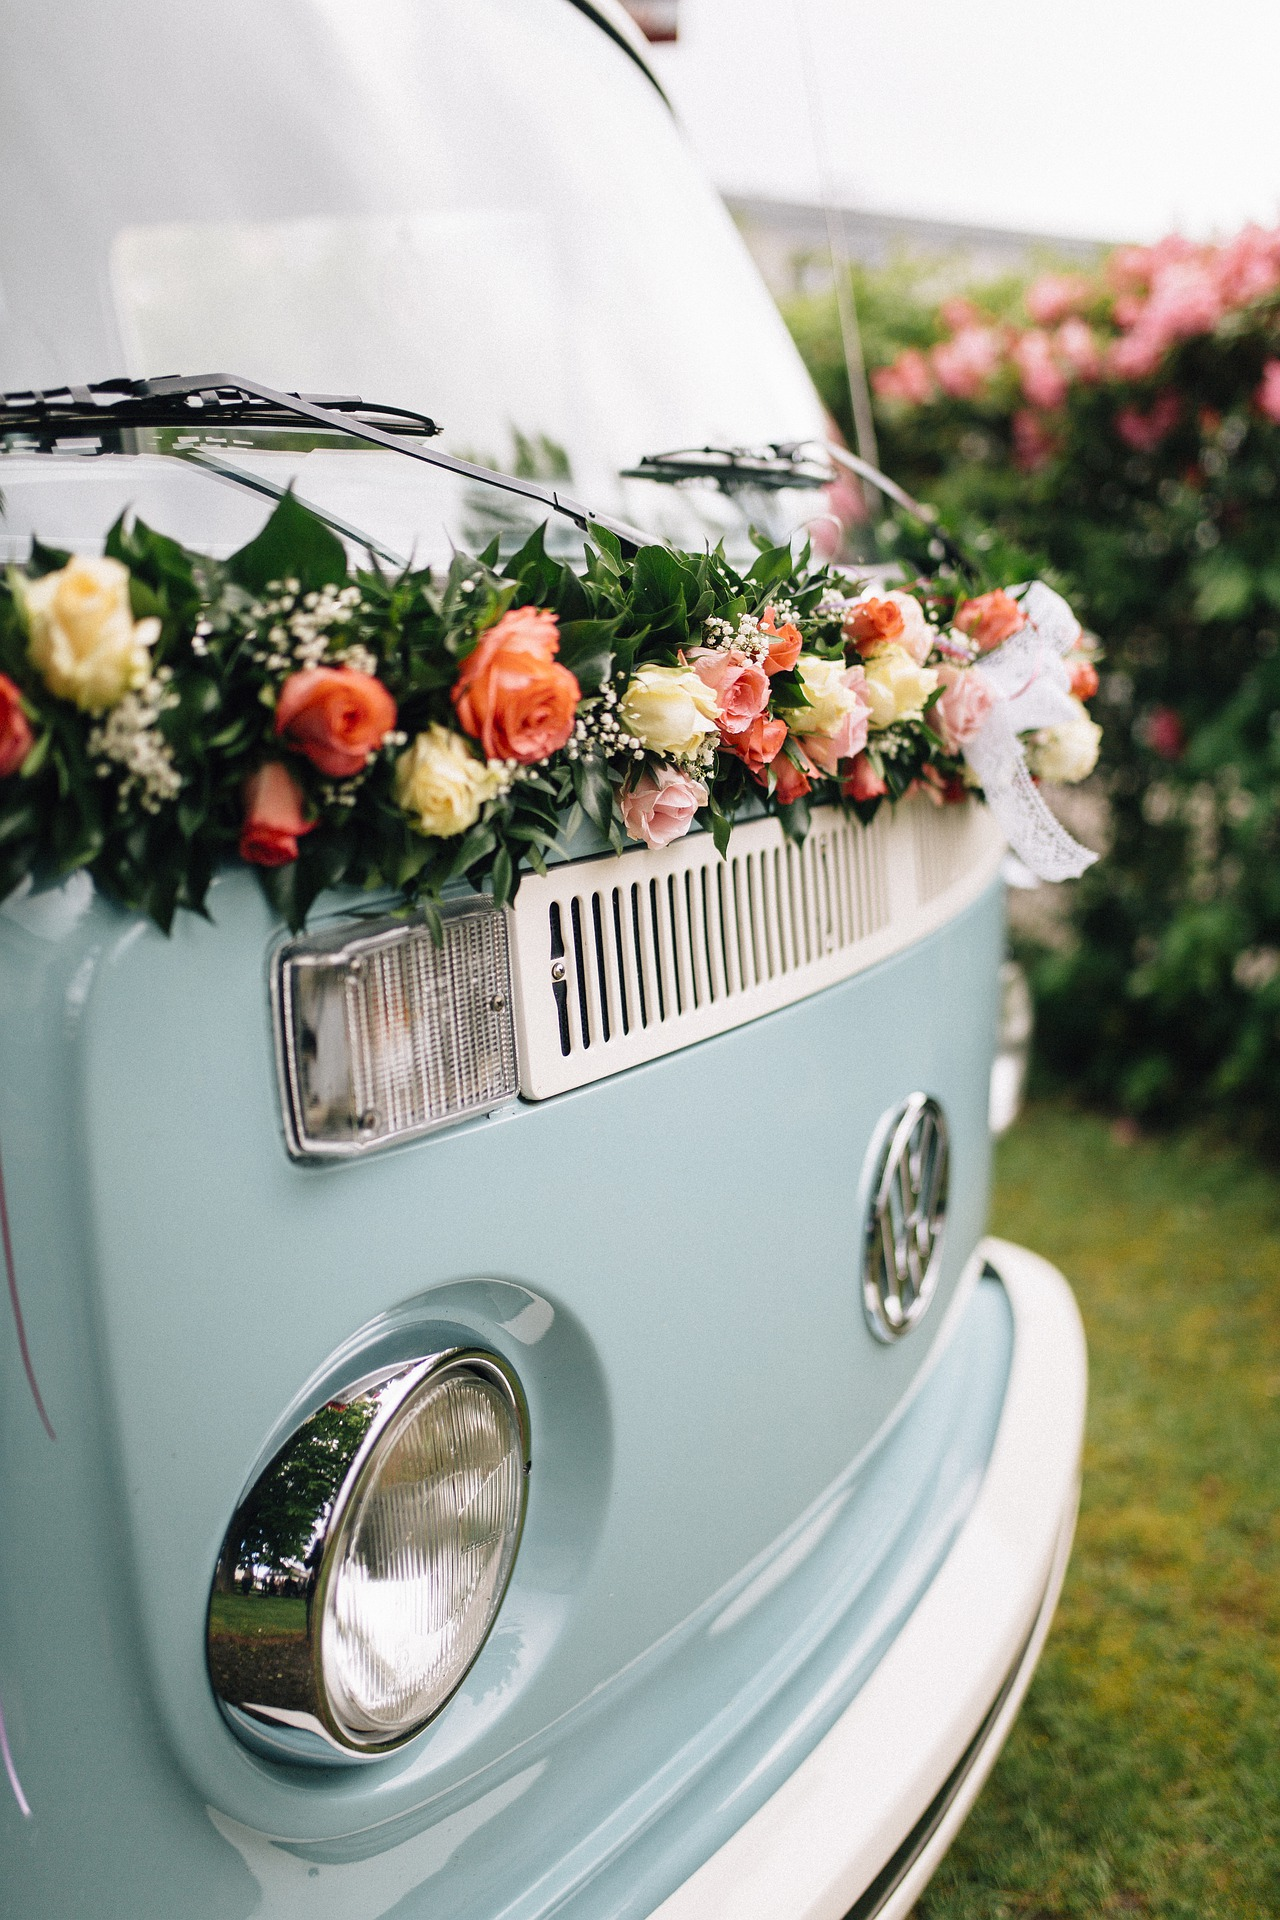 First 5 Things to Do When Planning a Budget Wedding